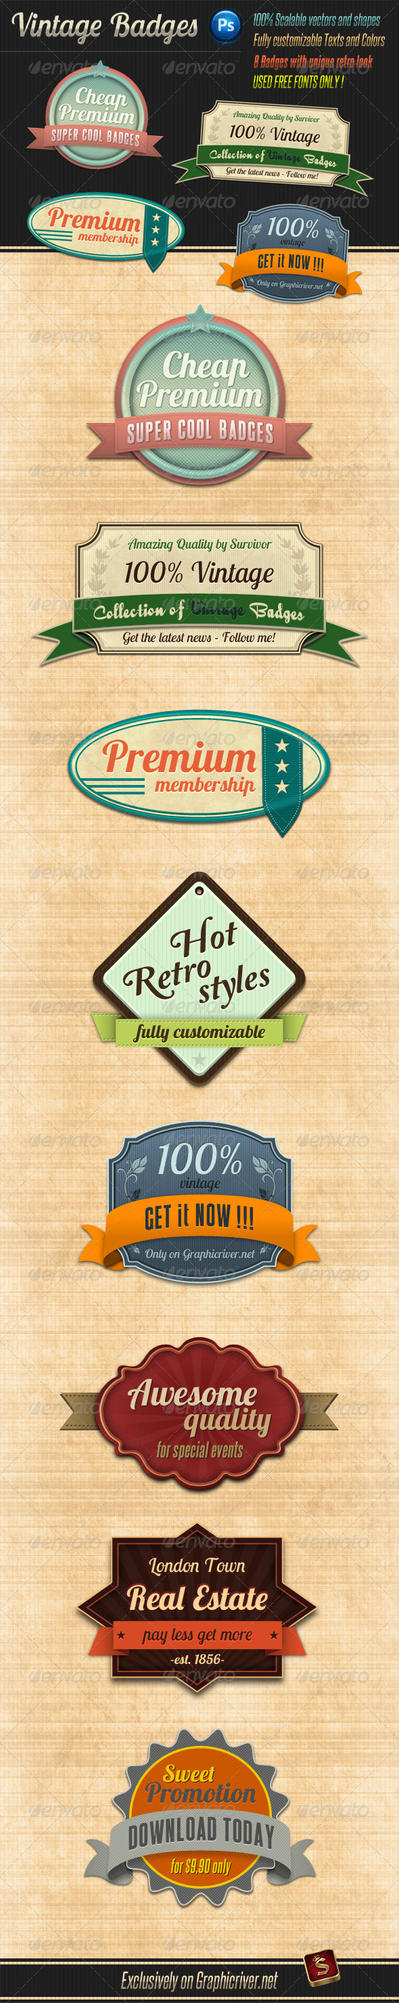 Retro Vintage Badges by survivorcz